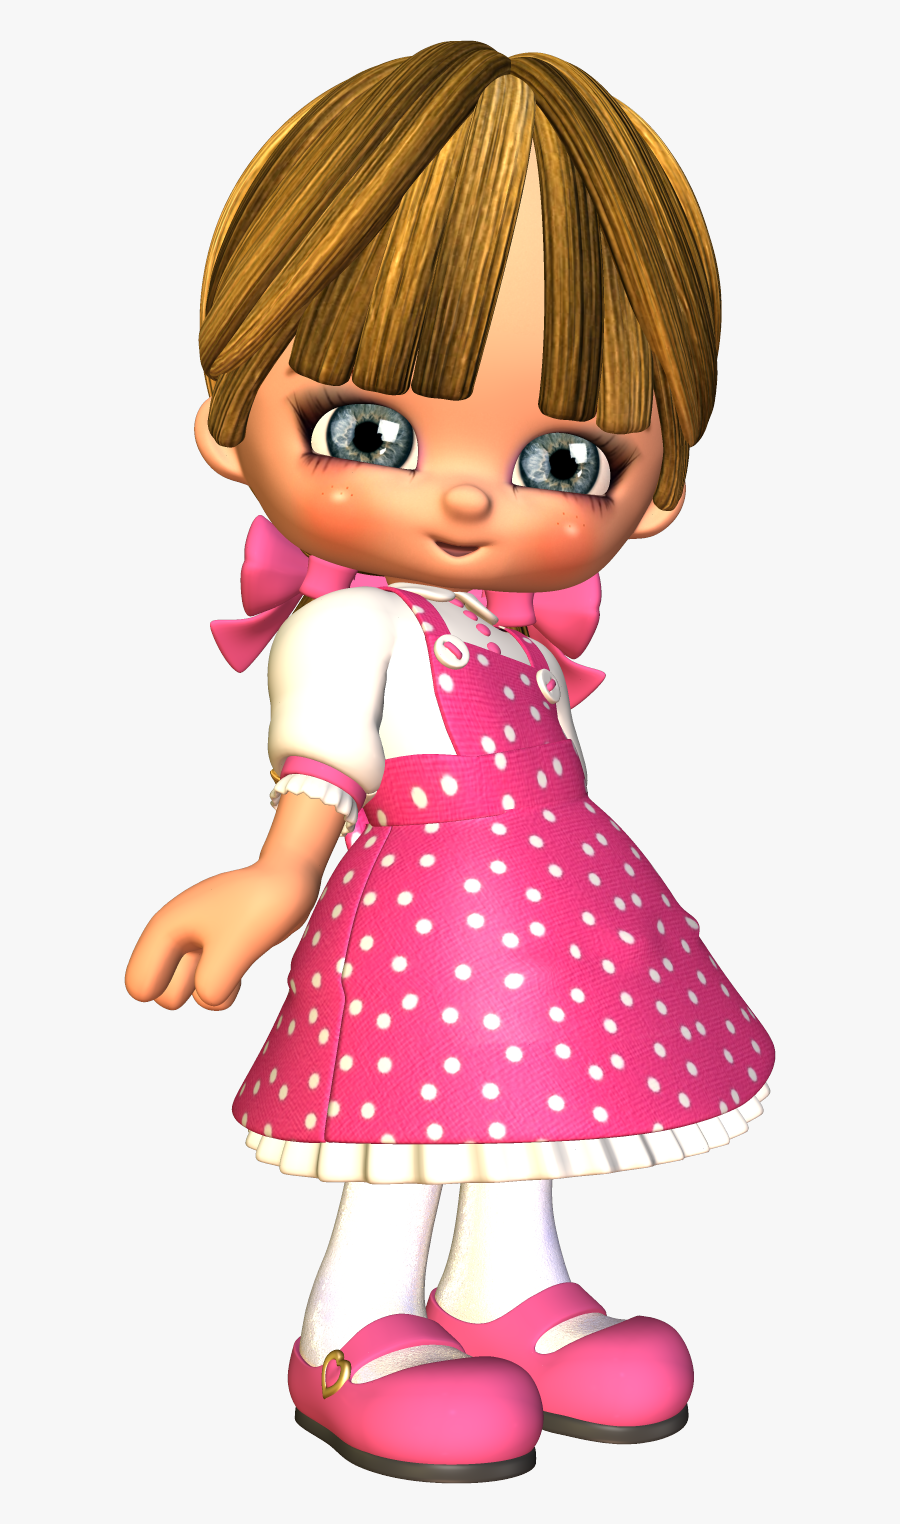 Petite Fille Dessin Png Free Transparent Clipart Clipartkey